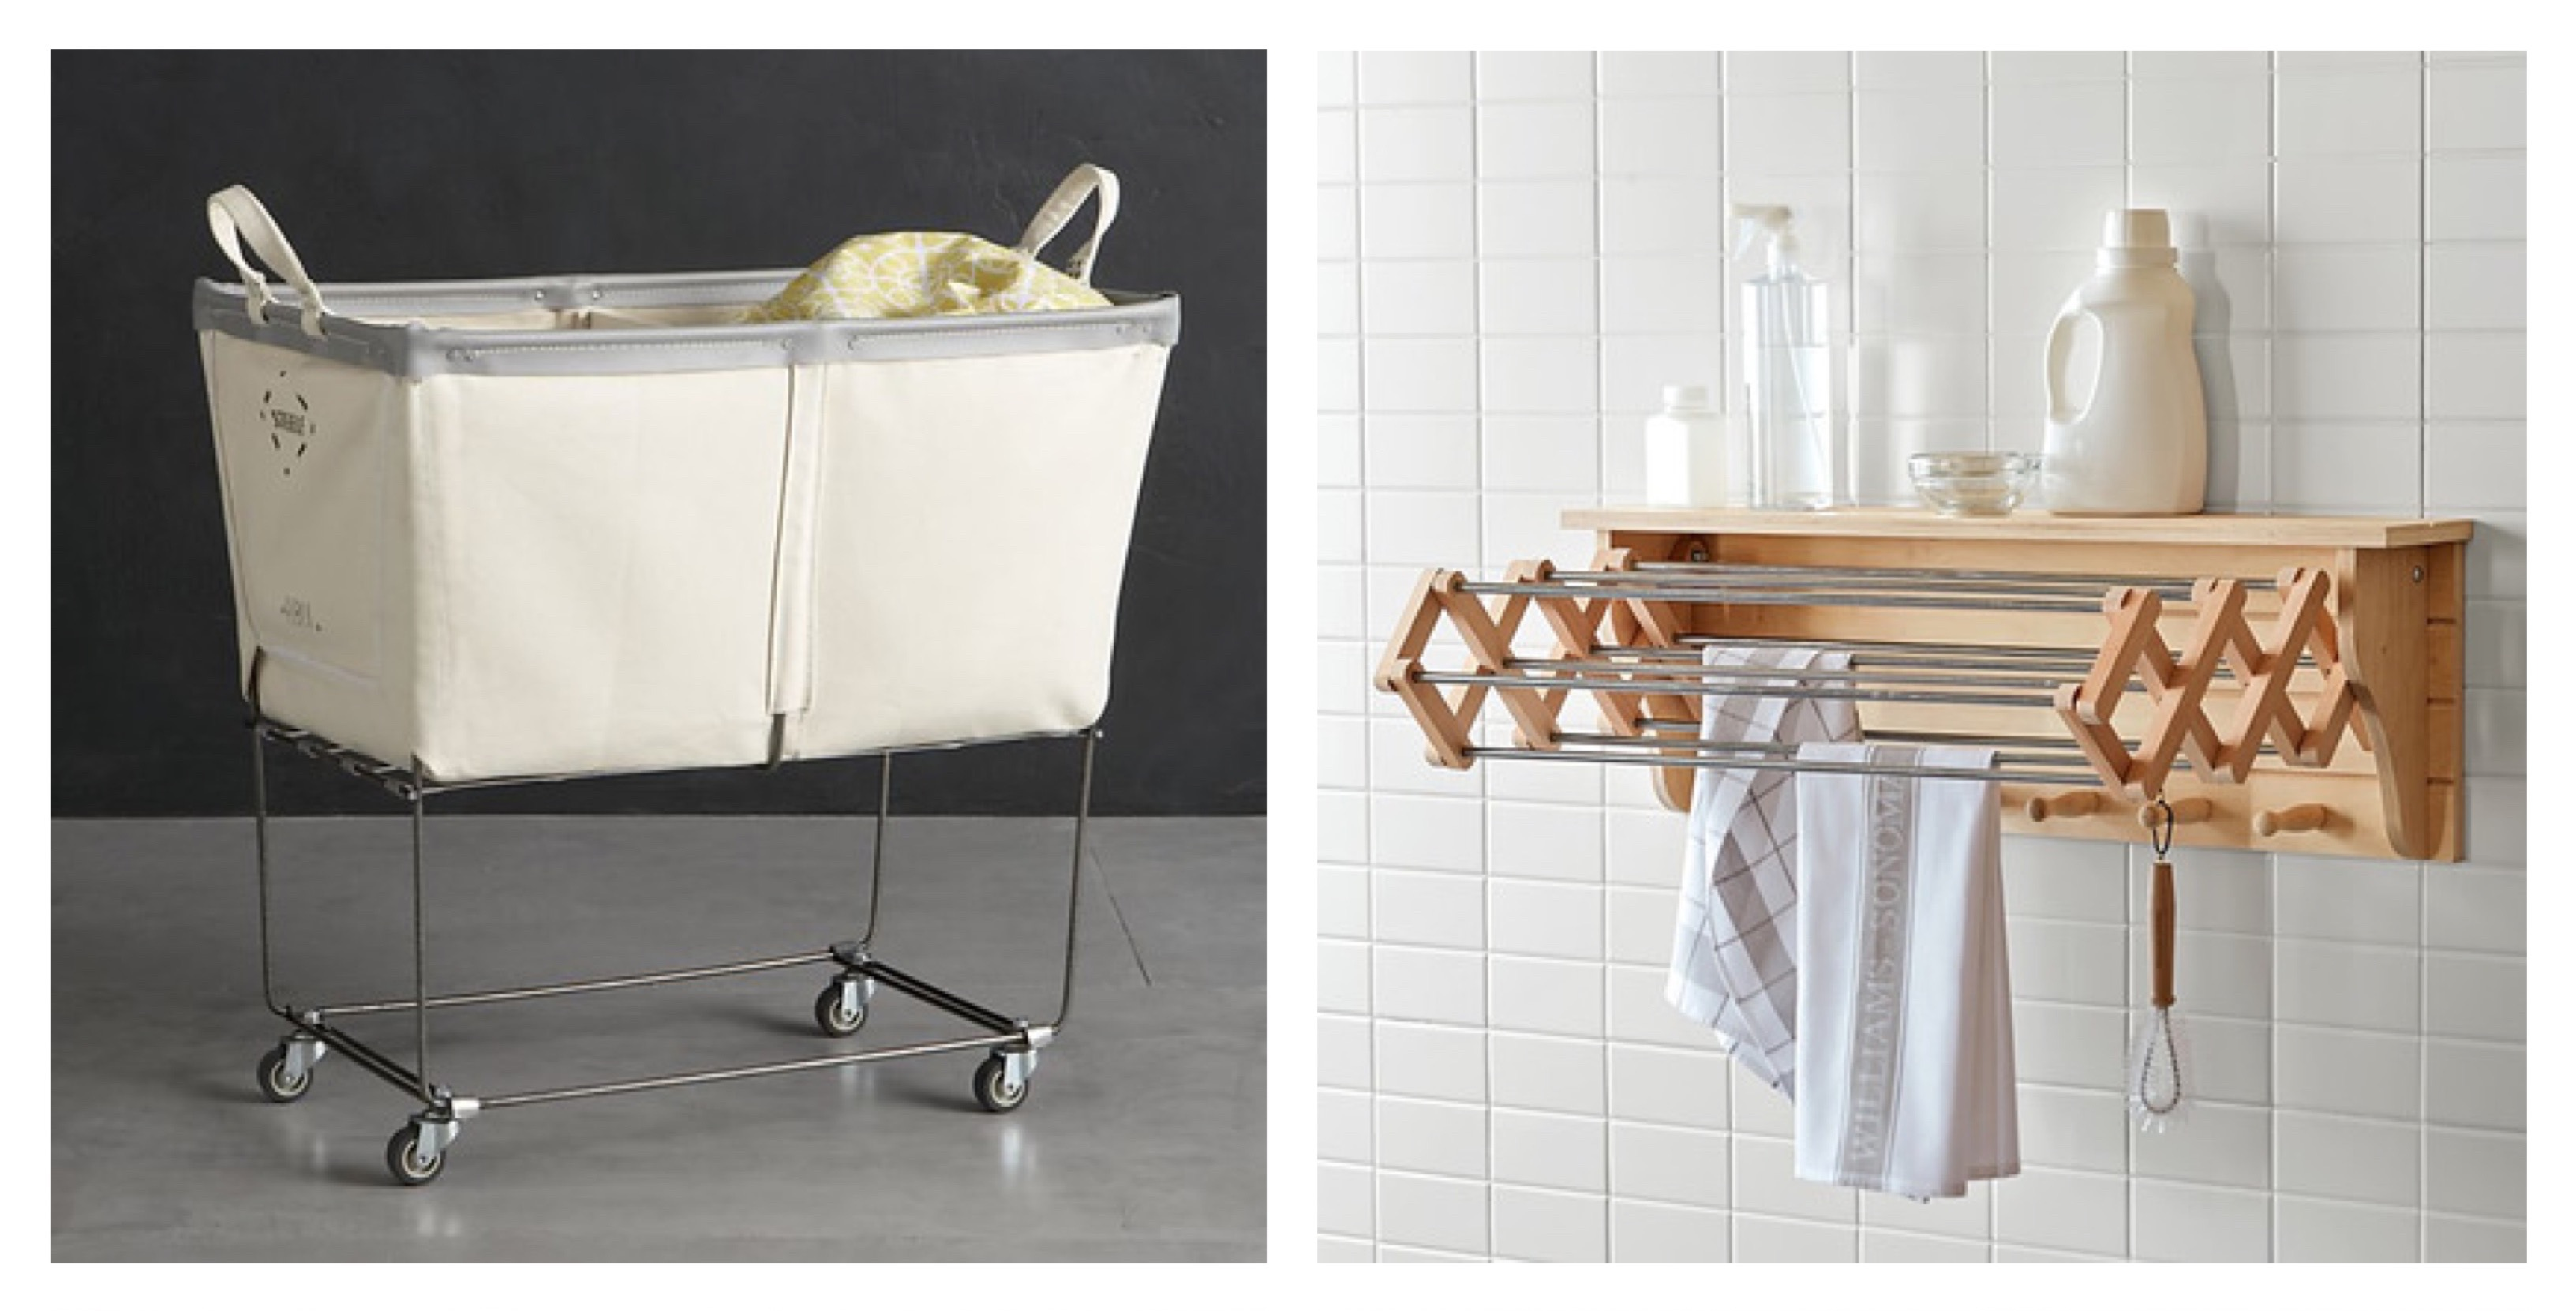 Nice Storage Solutions Wedding Registry Ideas Inspirationblueprint Registry Blog West Elm Bathroom Storage West Elm Bathroom Storage Home Furniture Design baby West Elm Registry